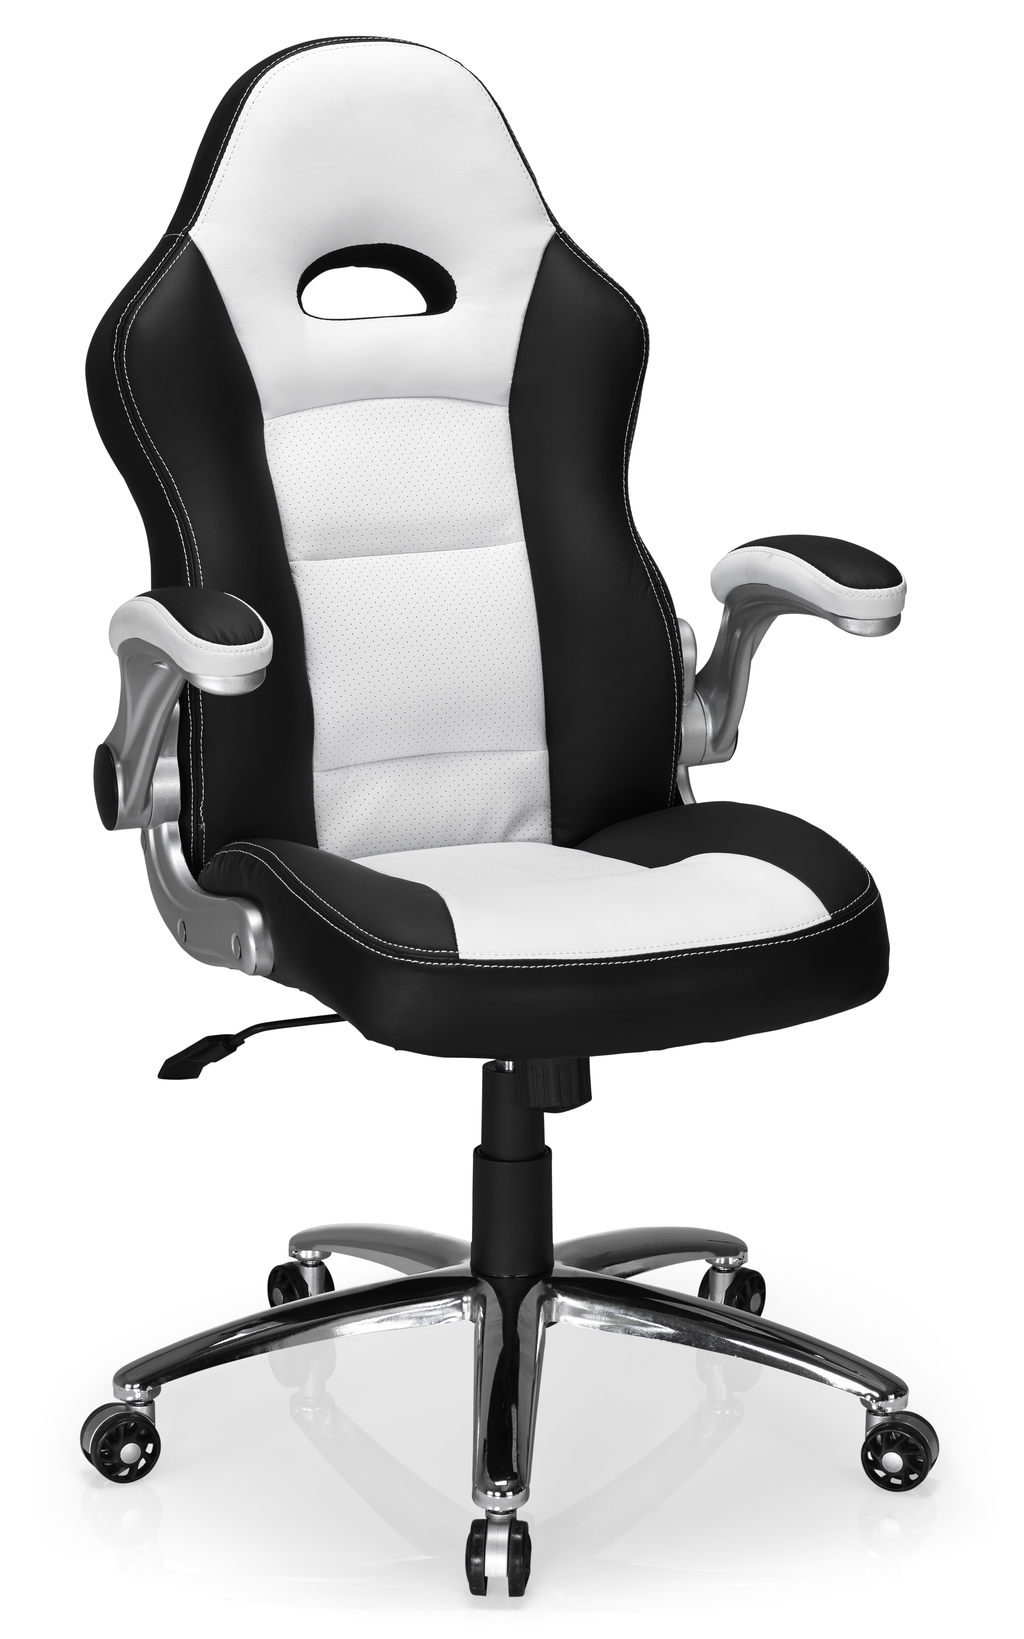 unique officeworks racing chair picture collection modern style